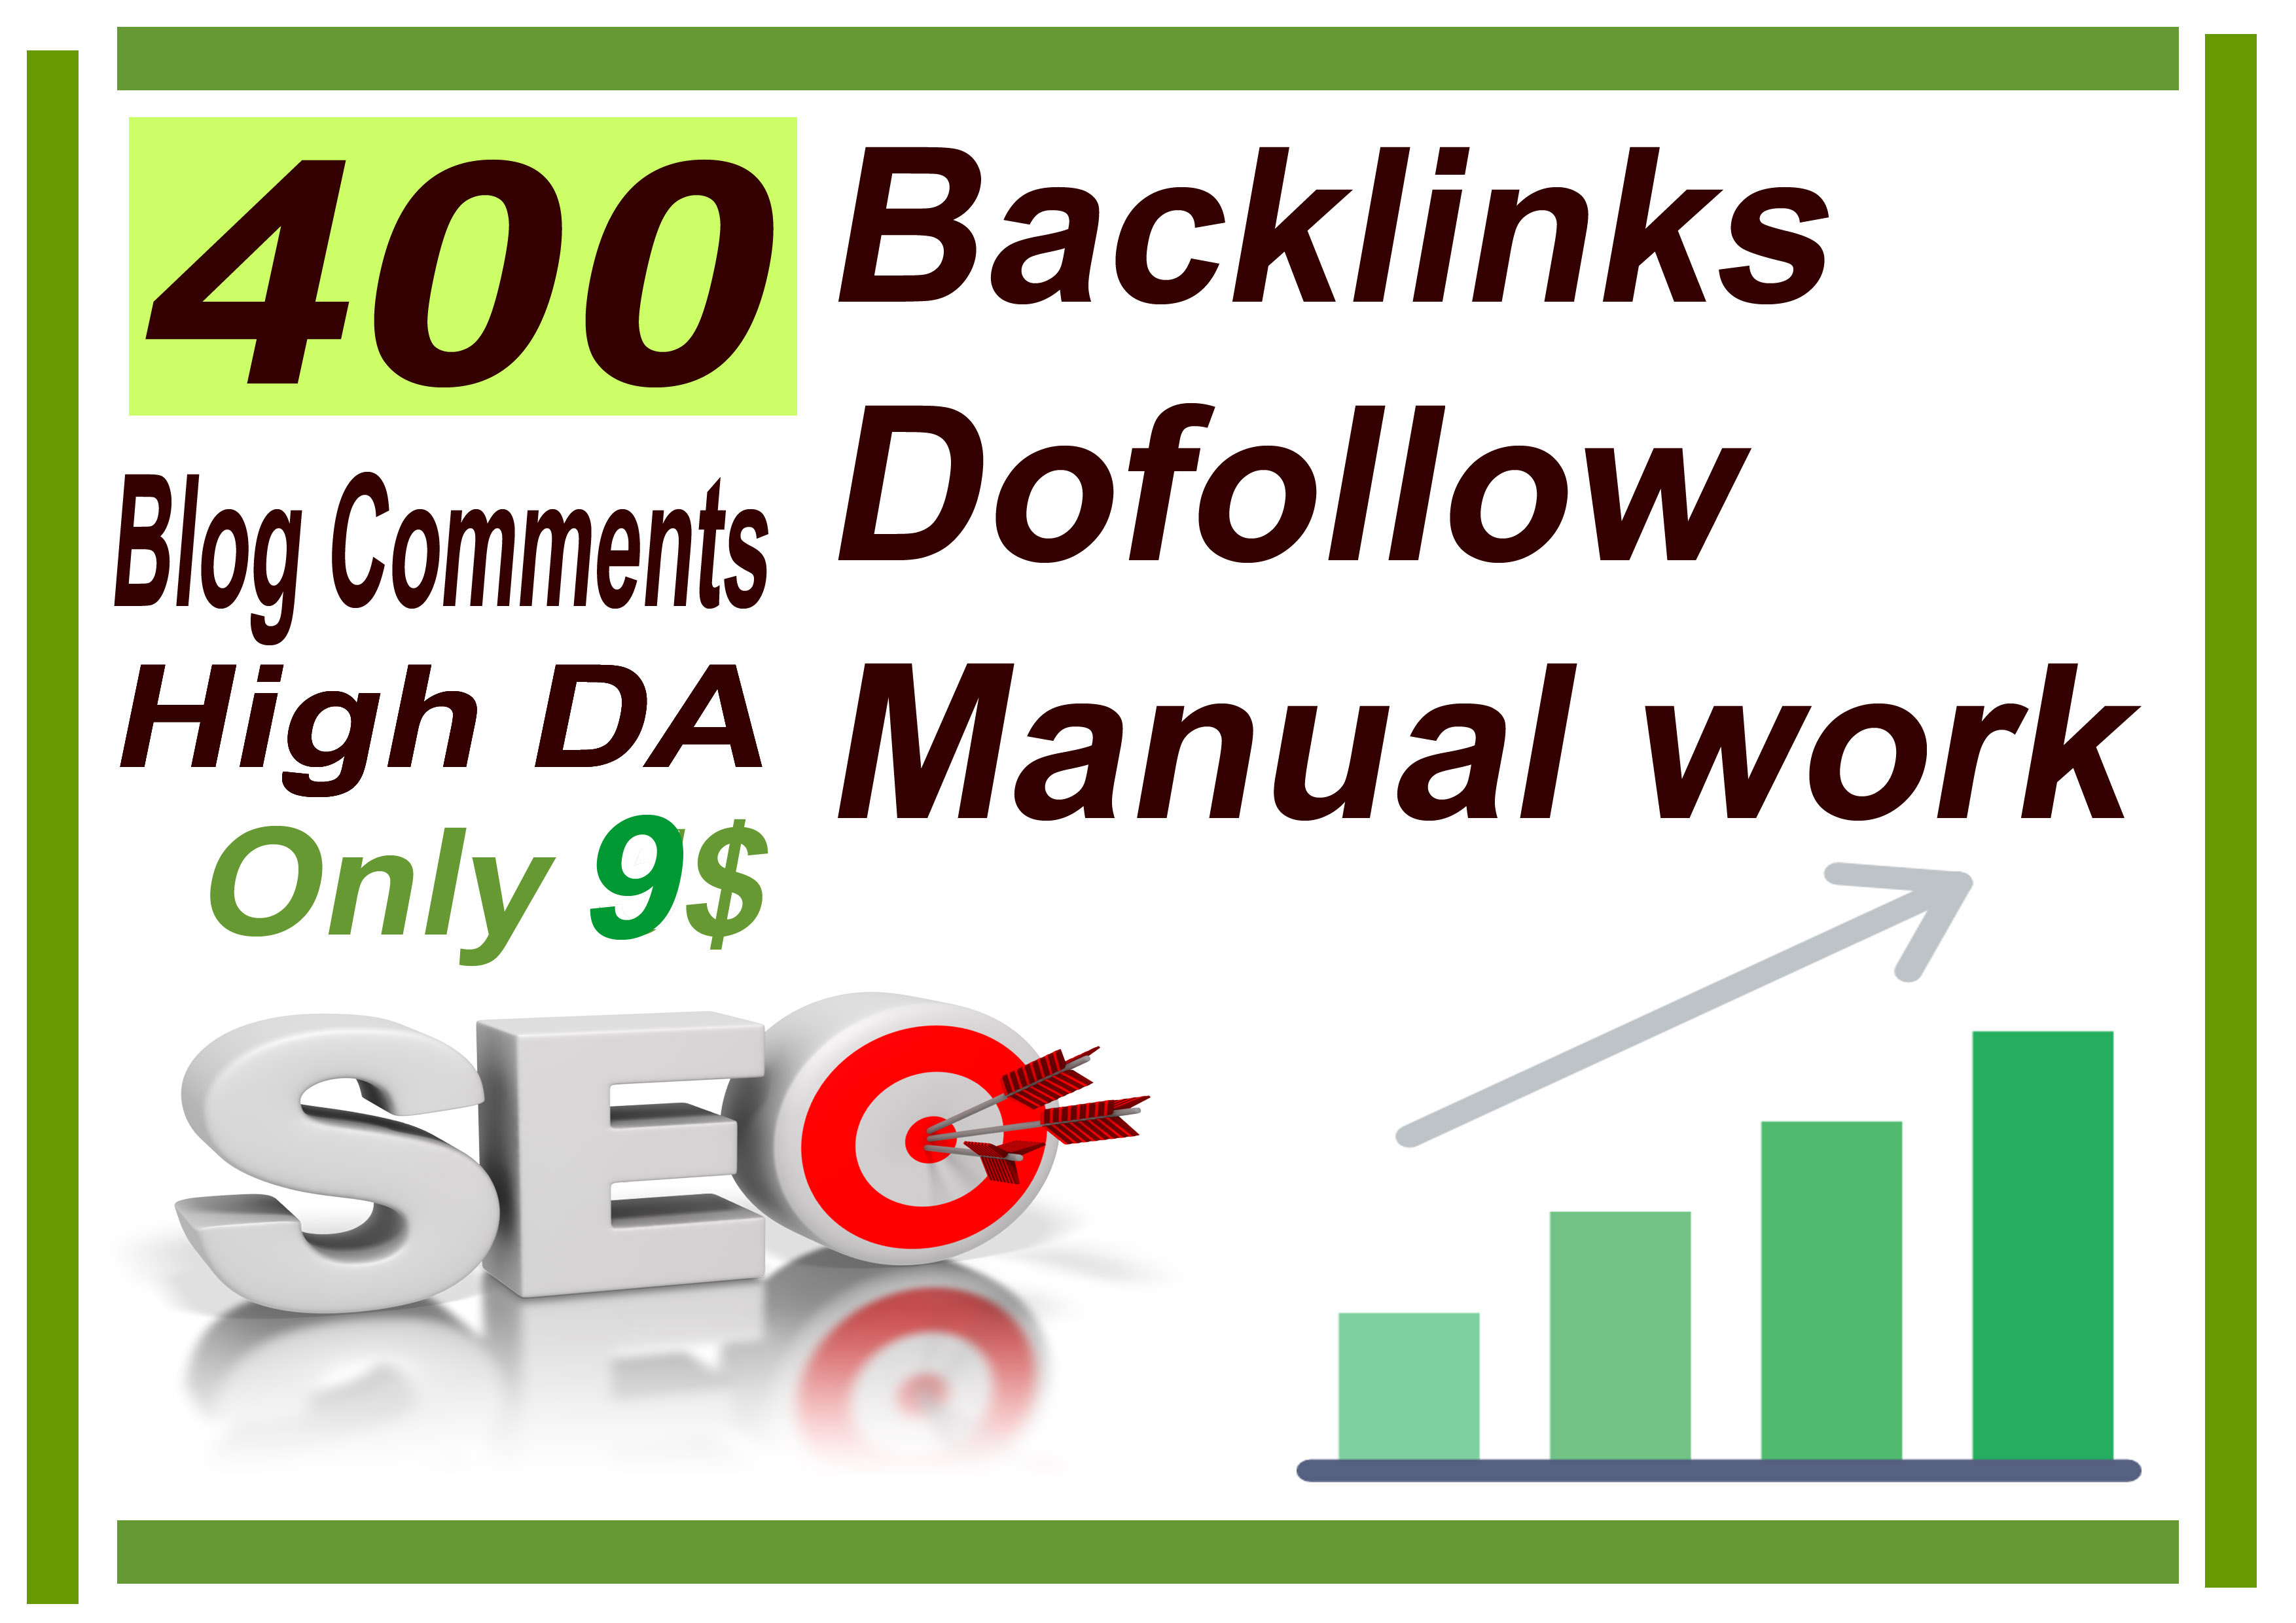 I will do 400 Backlinks dofollow High DA